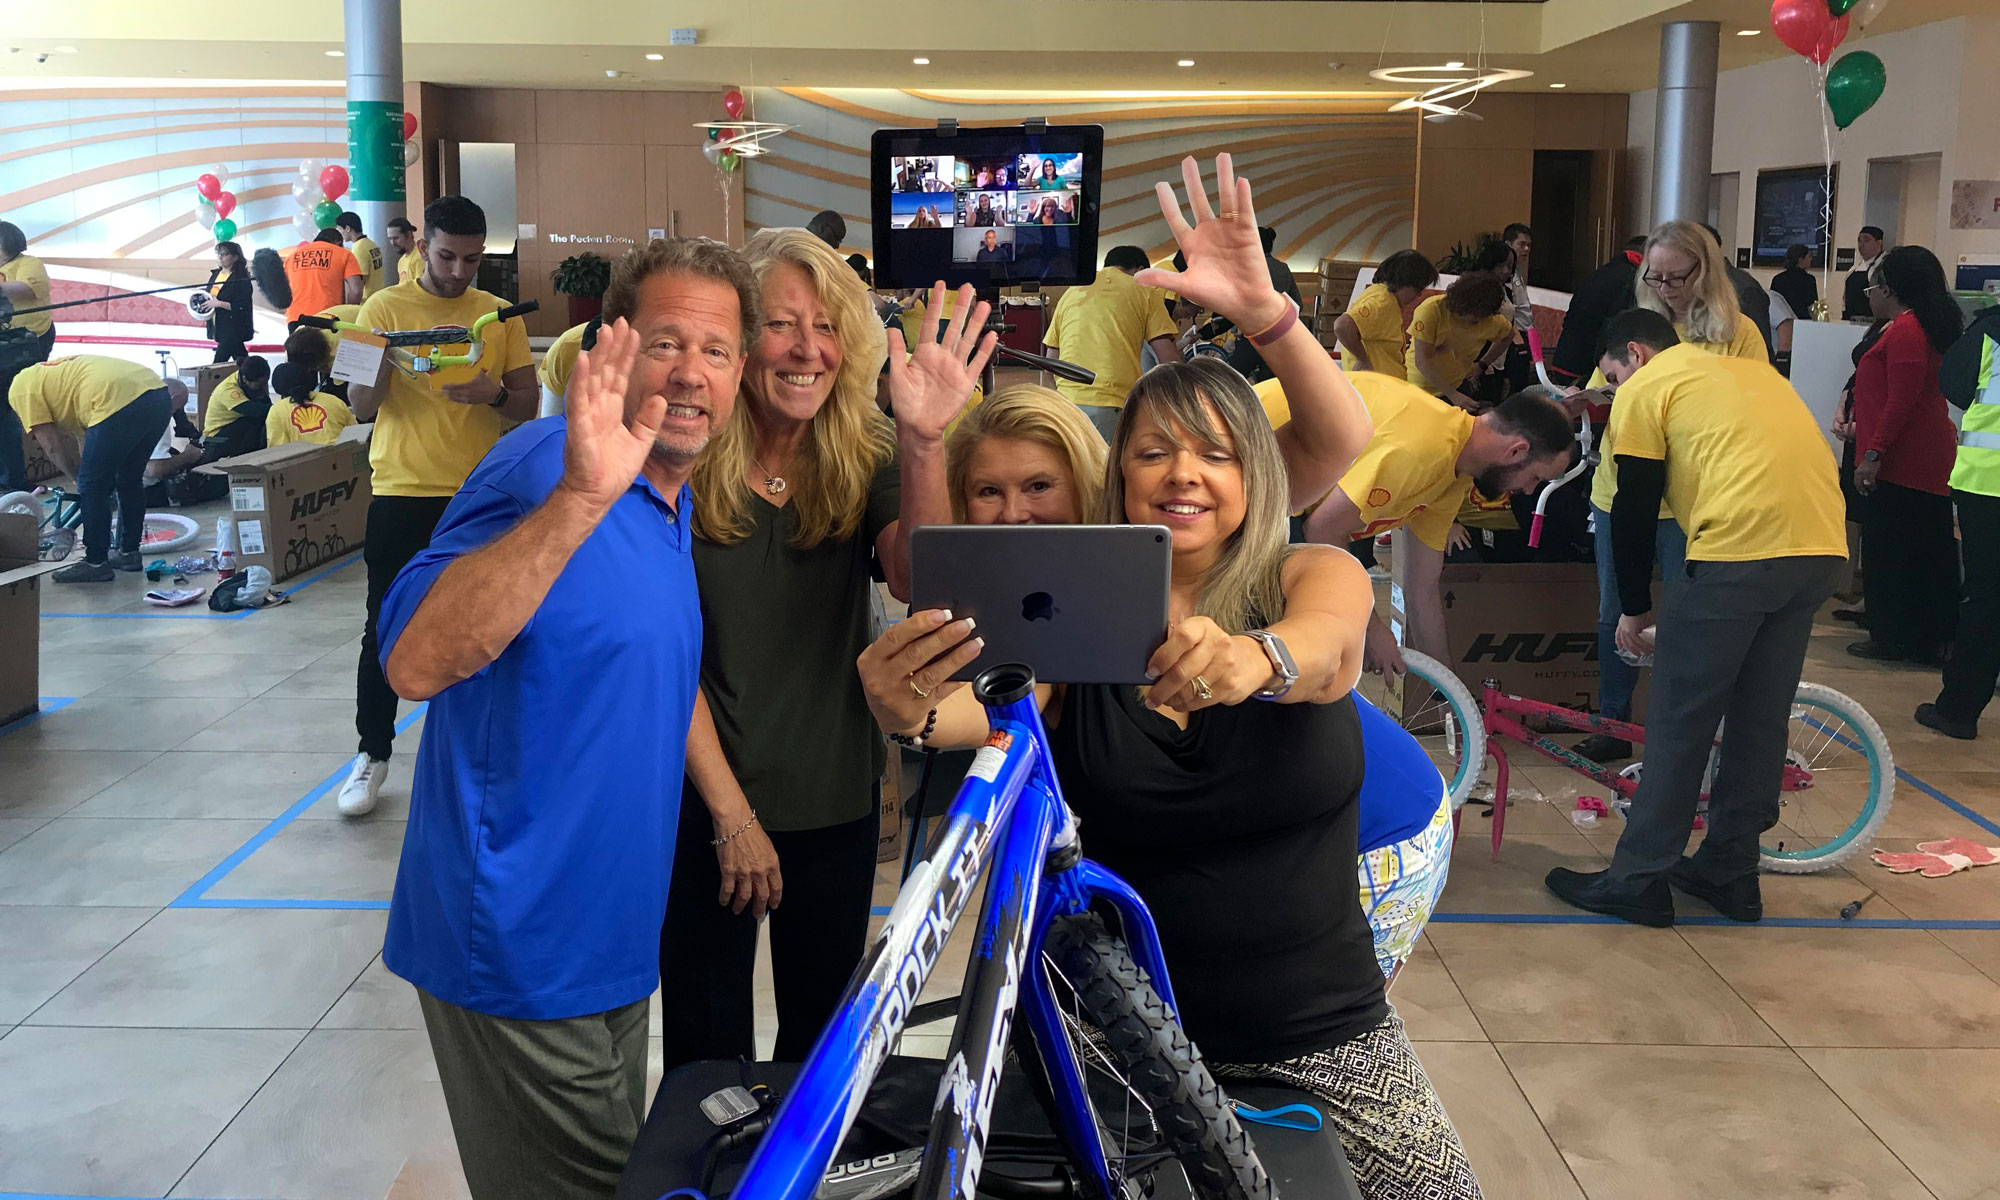 Above: At a Hybrid Bike Build Donation program, an In-Person team is taking a selfie with their remote teammates who are on the iPad behind them! Cameras around the room are broadcasting the event to all remote participants, while they interact with their in-house team using their own mobile devices to gain points, solve clues, answer trivia, and competing in fun, team challenges.